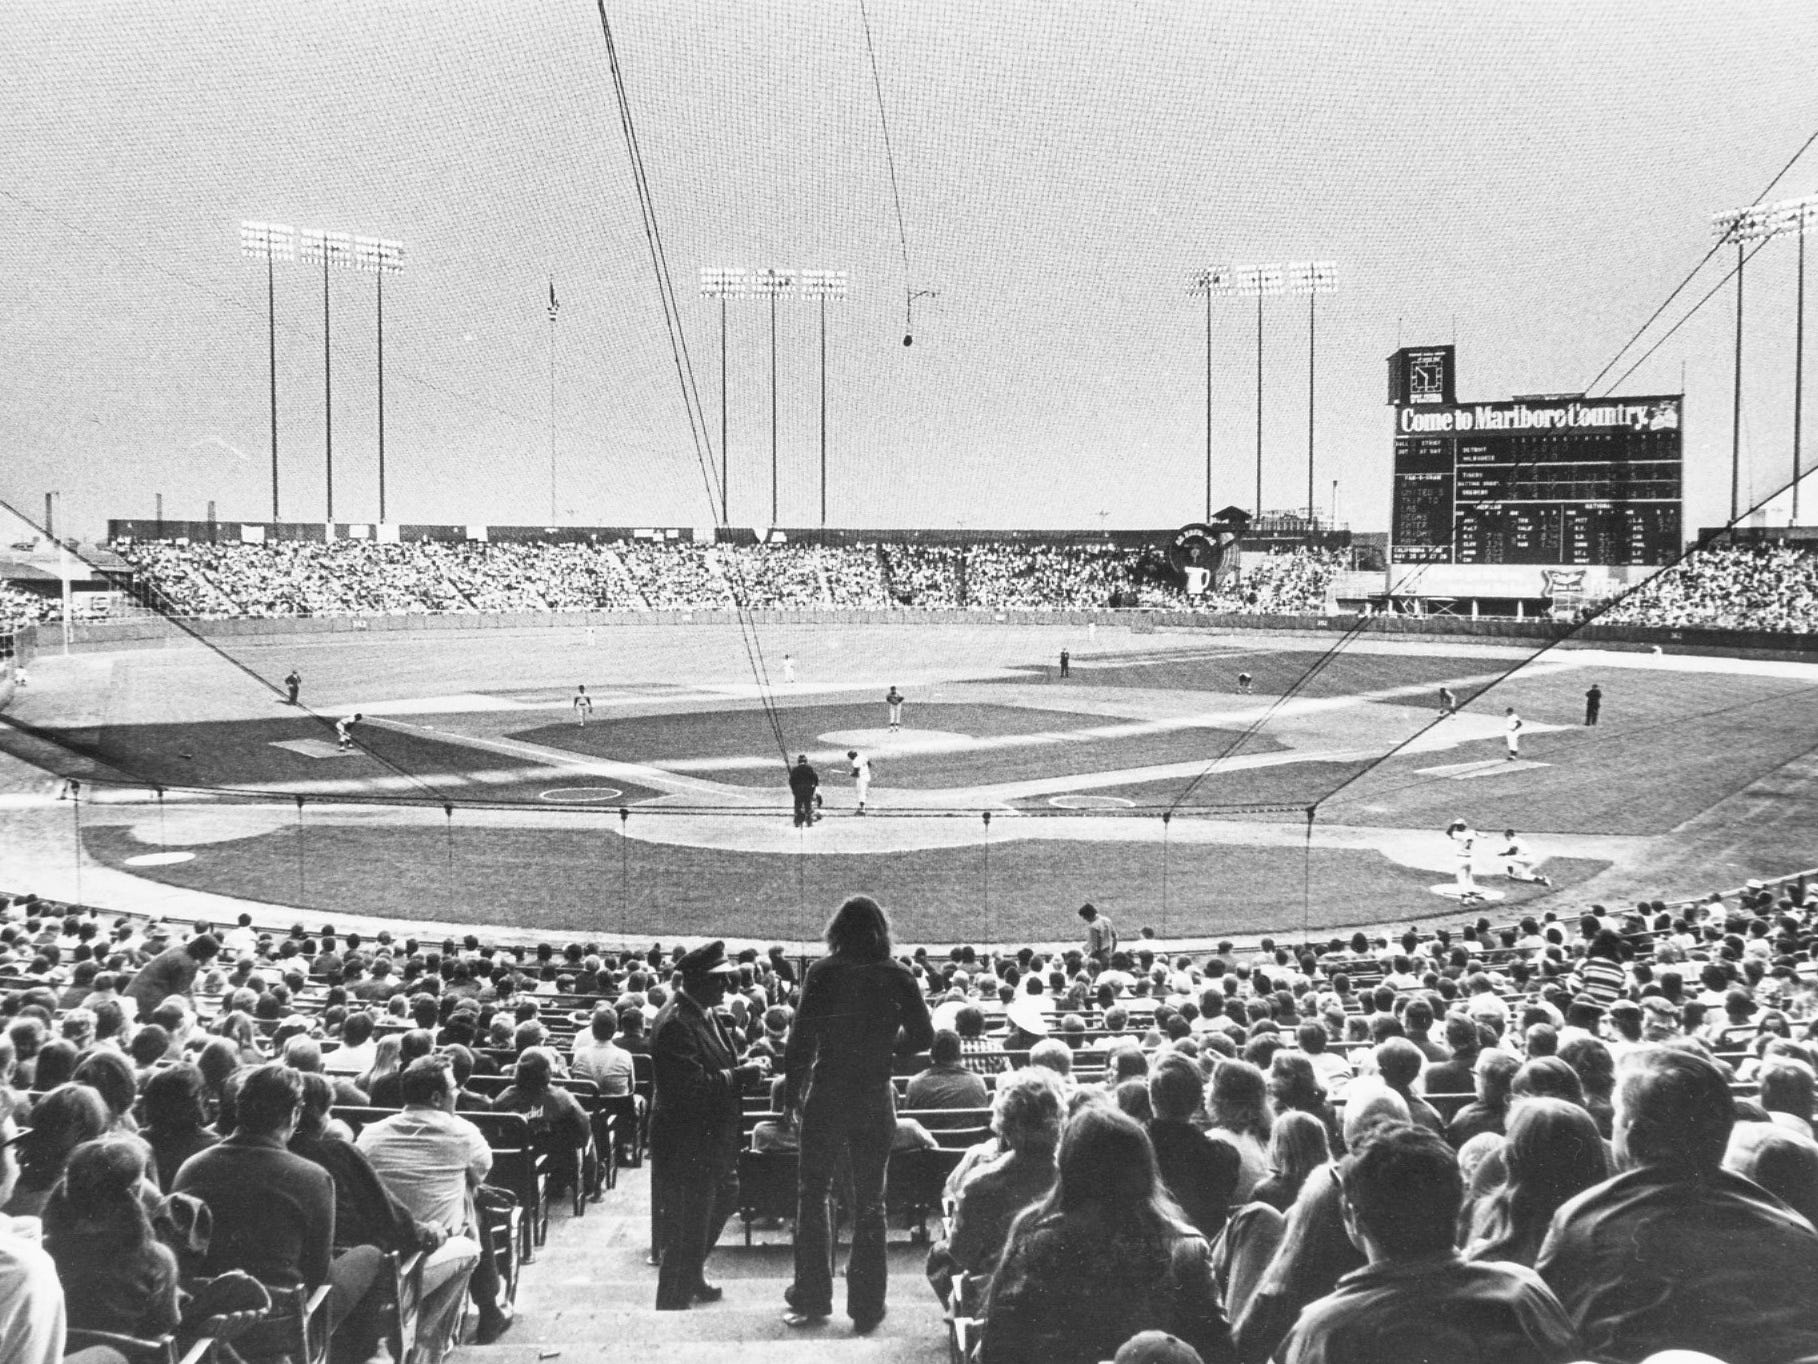 The Milwaukee Brewers drew more than 1 million fans for the first time in their four-year history in 1973. This was the scene at a game on May 20. 1973, when the team recorded its second-largest attendance ever - 41,655 - for a doubleheader with the Detroit Tigers at County Stadium. Bernie Brewer's chalet is in right-center field, to the left of the scoreboard. This photo was published in the May 21, 1973, Milwaukee Journal.